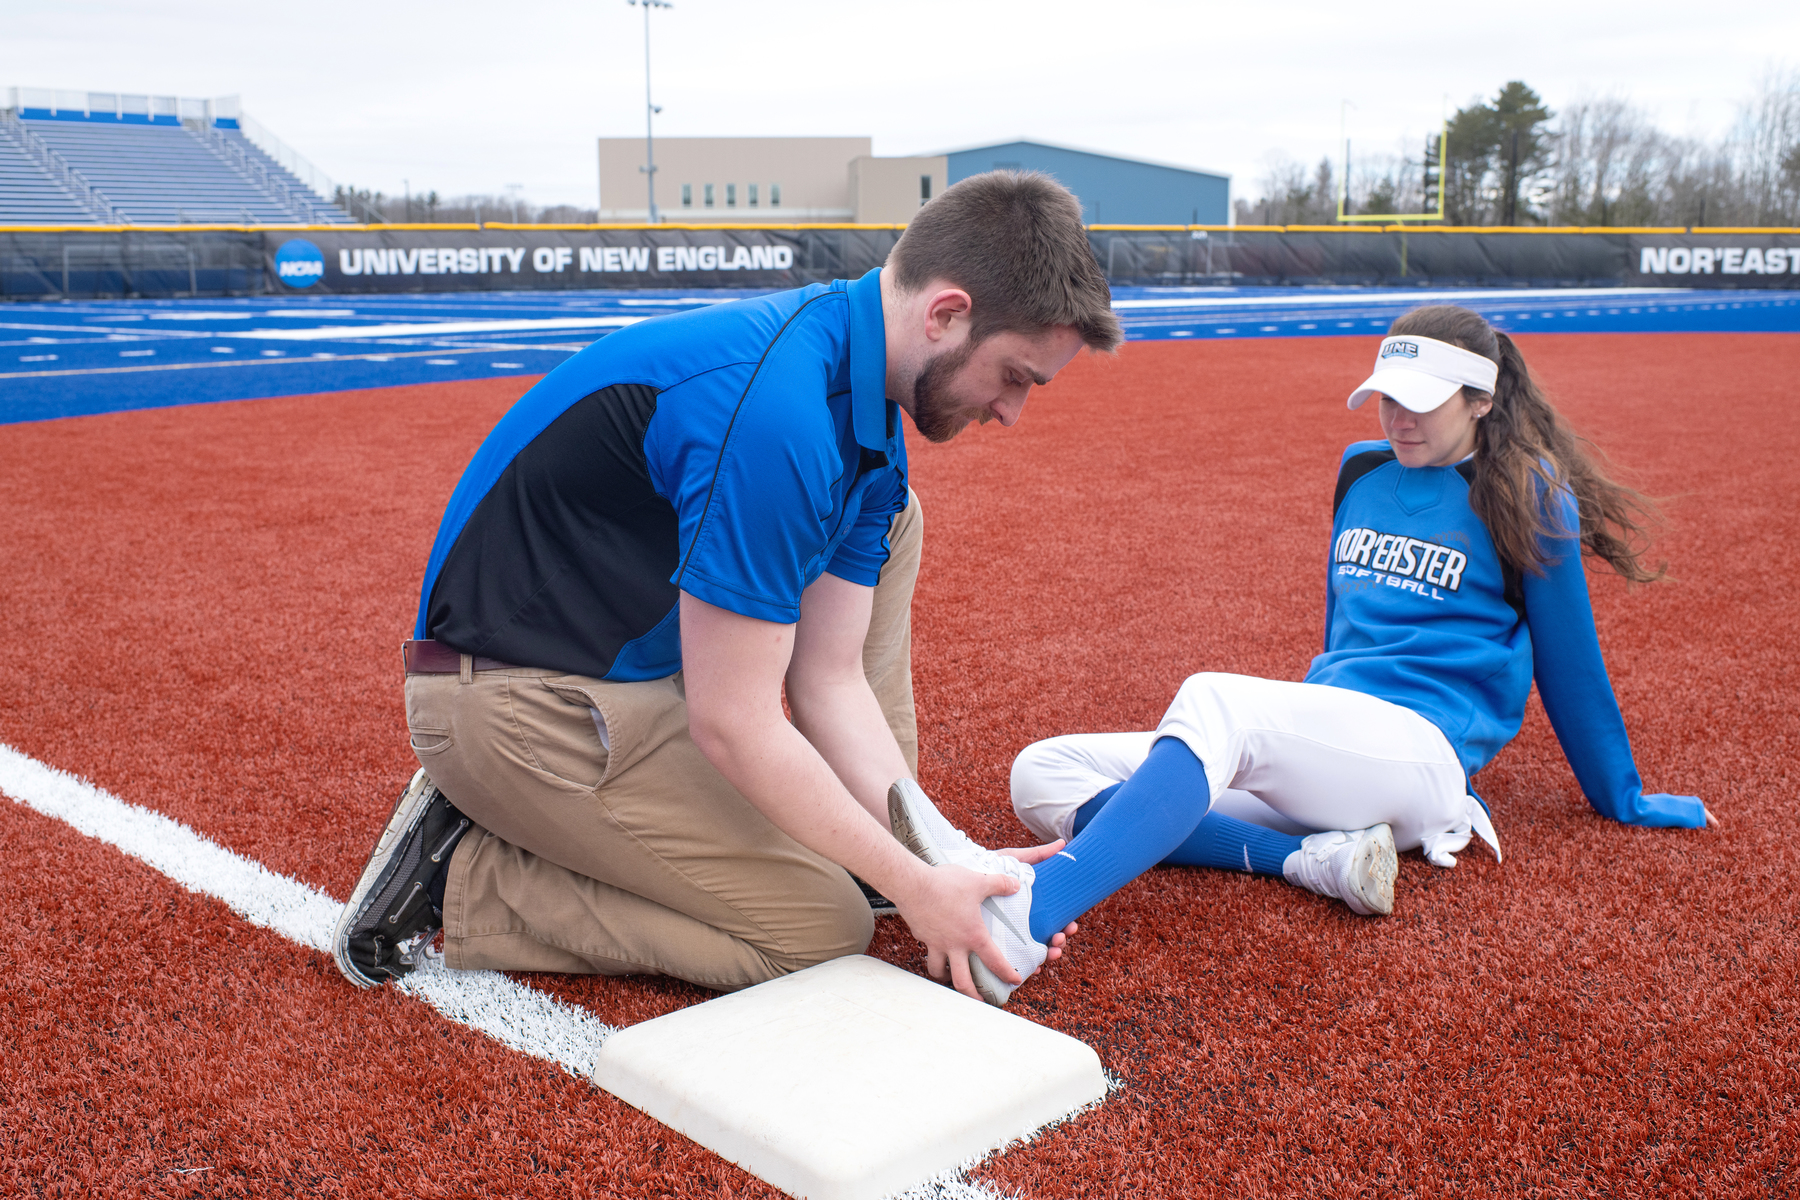 An athletic training student checks a fellow student's ankle on the baseball field